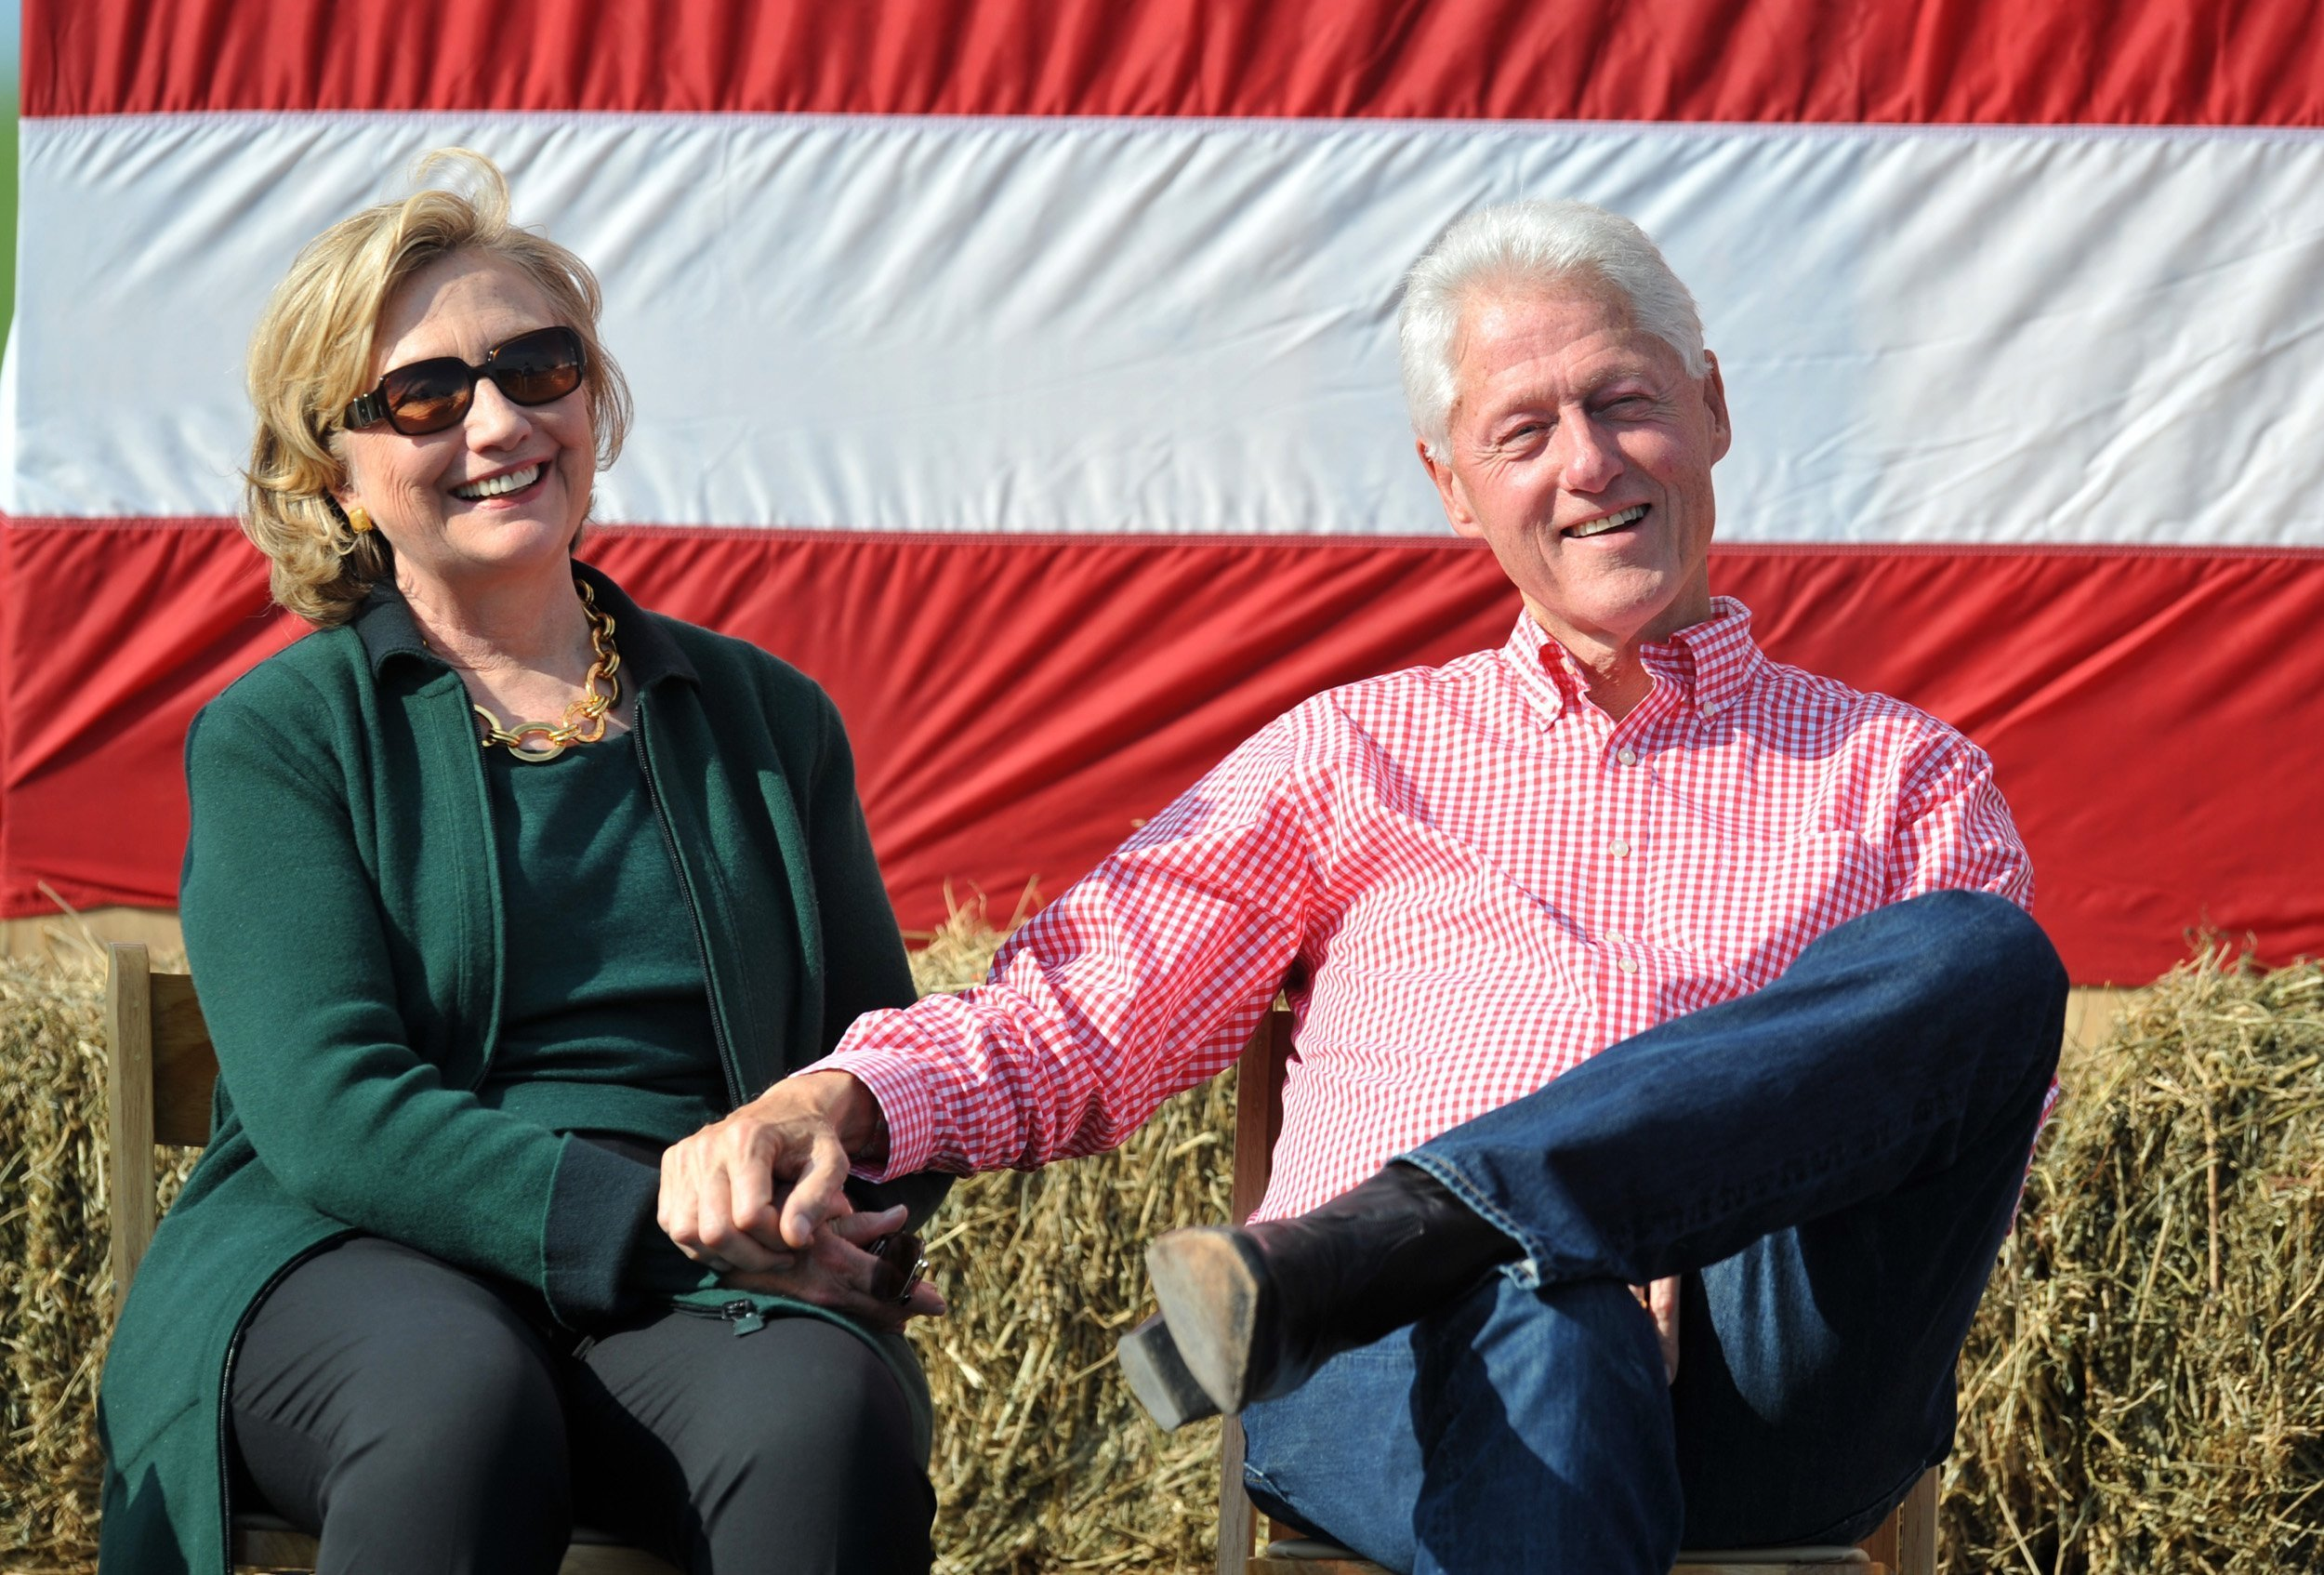 Bill and Hillary Clinton at the 37th Harkin Steak Fry in Indianola, Iowa | Photo: Getty Images